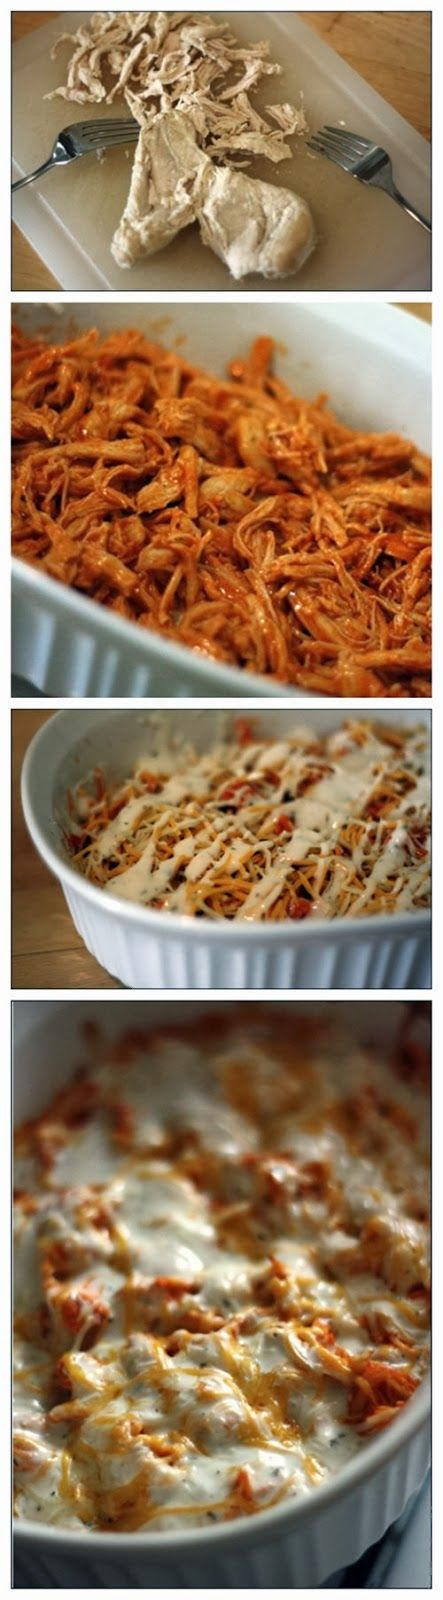 Buffalo Chicken Dip Recipe Ingredients 1 pound of boneless skinless chicken breast 1 Bottle of Franks Red Hot sauce (12 oz. or 1.5 cups) 8 oz container of cream cheese 1 cup Mexican cheese b...